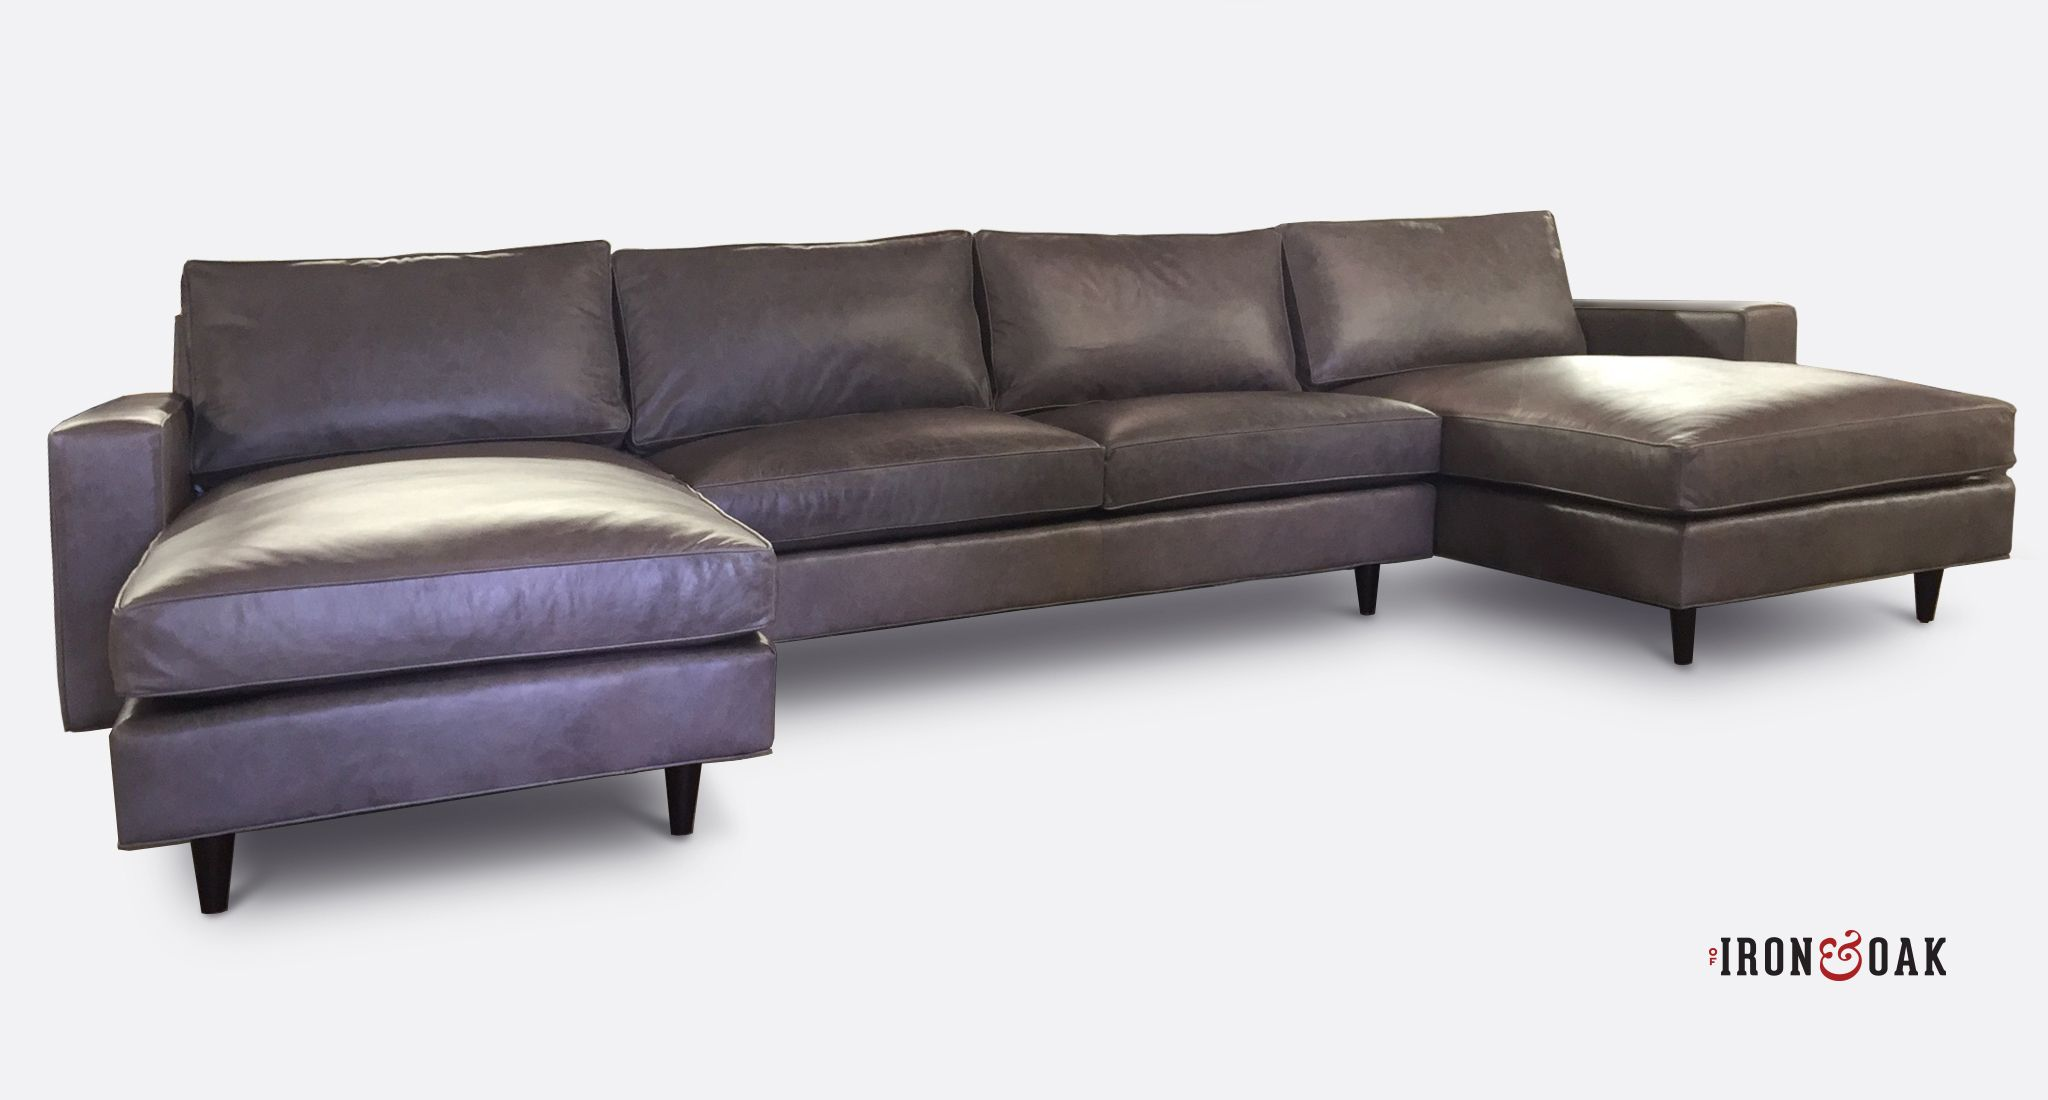 A fantastic of iron and oak grey leather double chaise sectional american made furniture let us help you configure one for your space